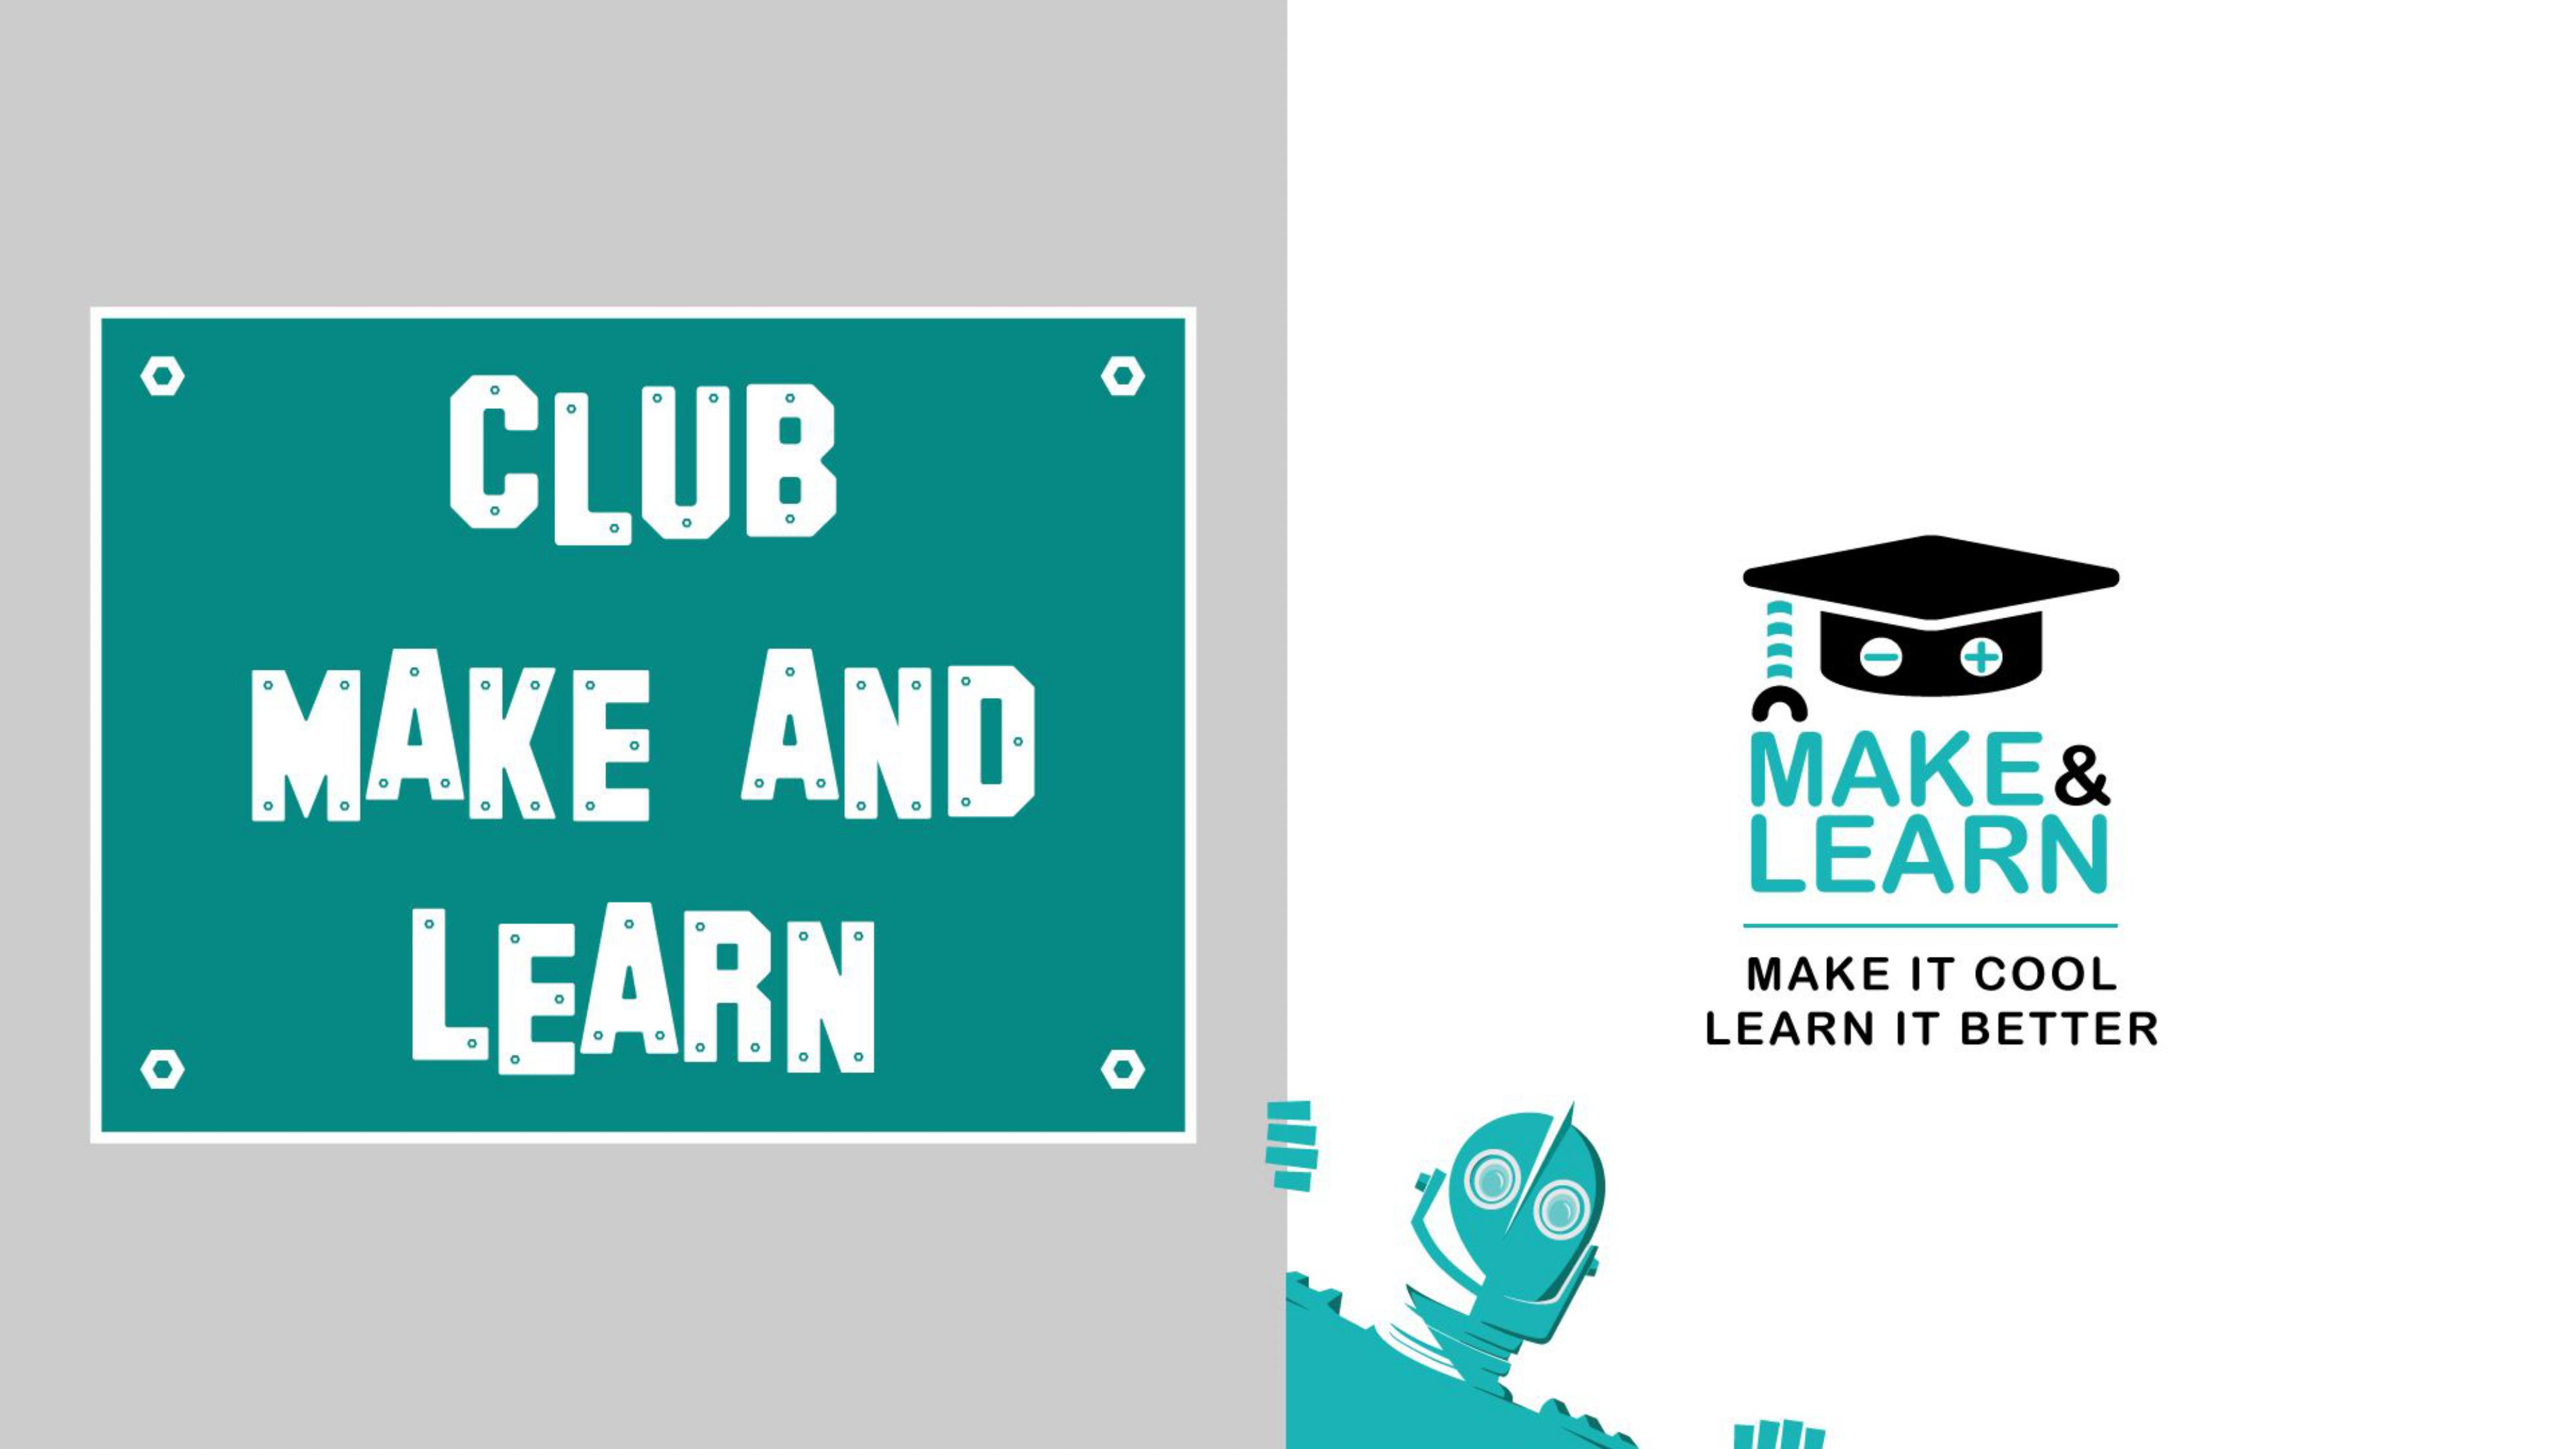 ClubMakeAndLearn